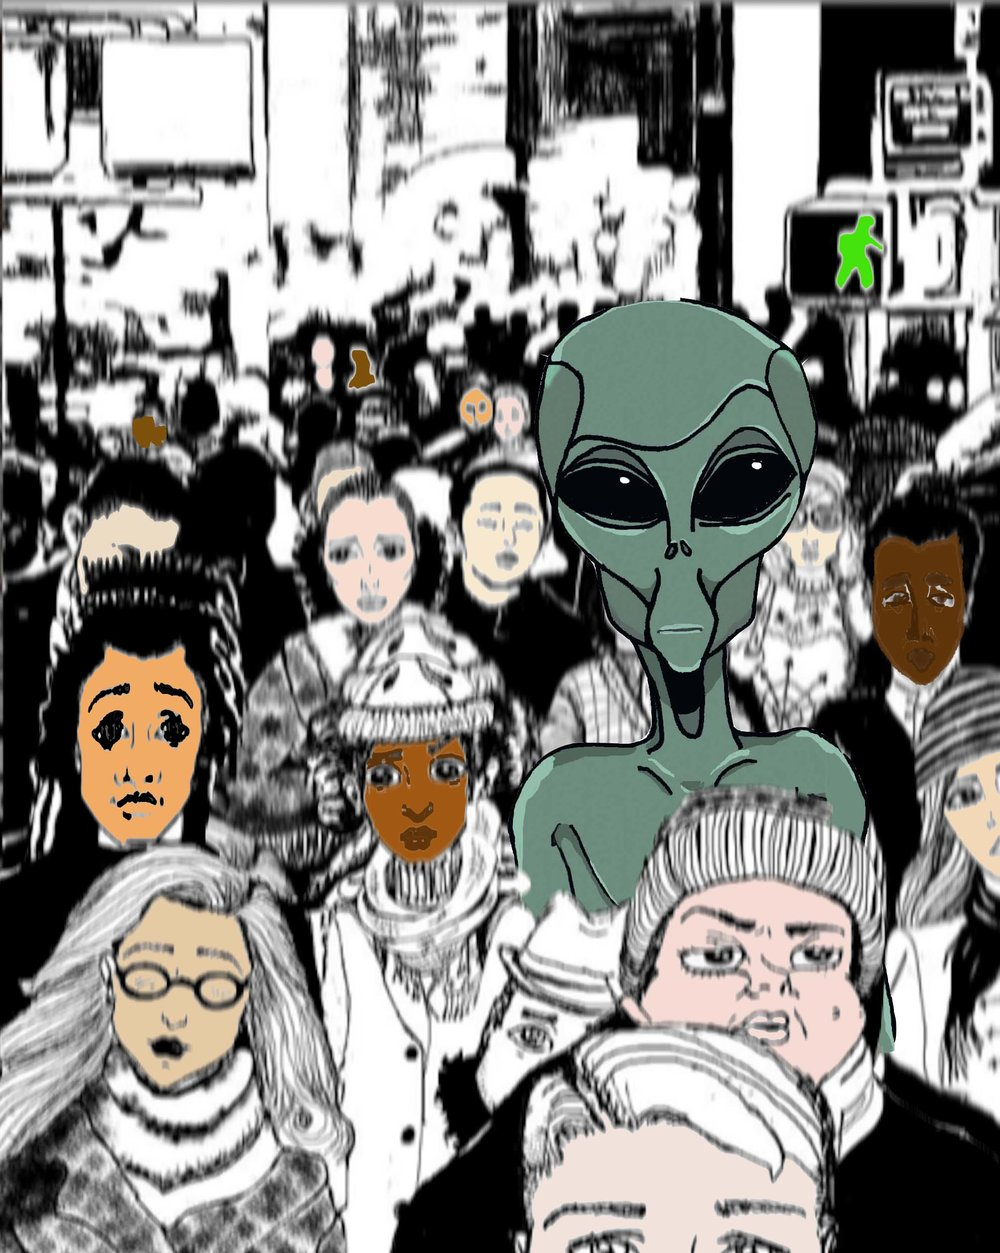 THE ALIEN AMONGST US - Would you say anything if you saw one? One might think you are absolutely crazy. But would you? Let's just say you are at home, alone and laying in your bed. It's some time after 3:00AM. Suddenly, the door creeps open and you are suddenly alarmed because your kitty, or pooch, is lying right next to you fast asleep. You are surprised that the little monster didn't wake up to warn or protect you. Sure when it's time to eat, a little shake of the bag yields a different outcome.You feel the presence in your room. You are not alone. Slowly your eyes open half-massed to peak over the covers and then you see IT! IT is standing directly over you! Watching you expressionless with those large dark eyes. You faint and wake the next morning with a hazy recollection of your voyeur of fear (as you call IT). Do you tell anyone?